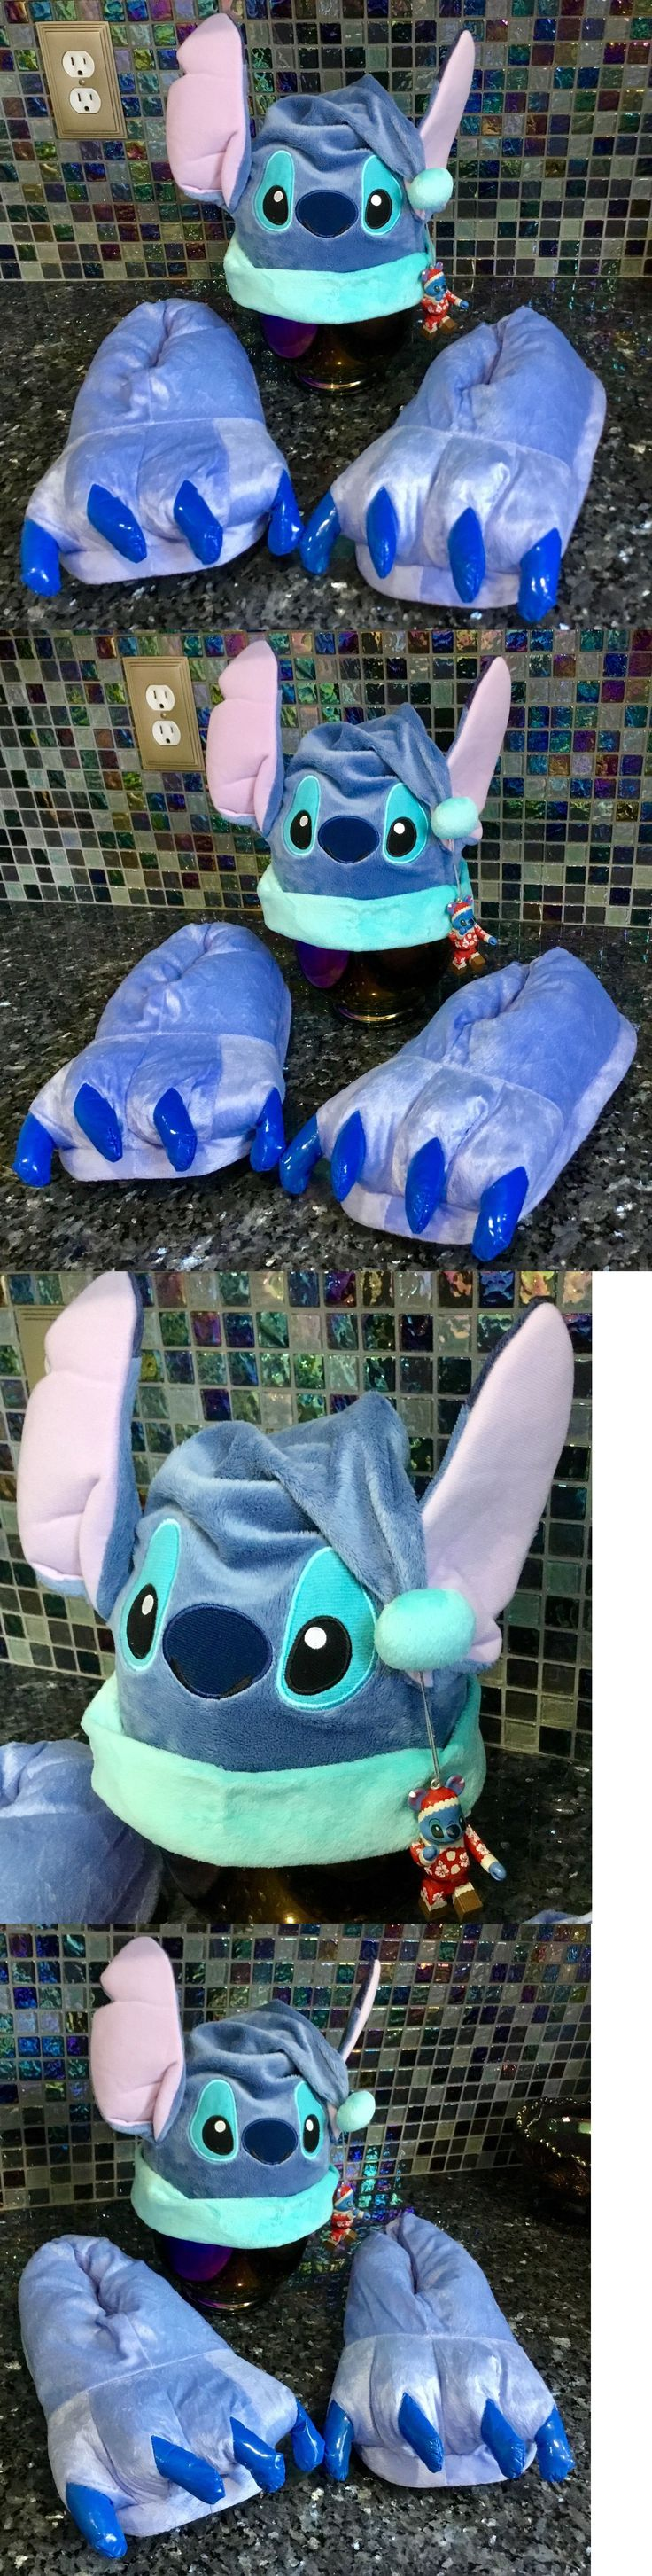 Other Costume Accessories 82161: Disney Lilo And Stitch Christmas Holiday Santa Costume Hat Bearbrick And Slippers -> BUY IT NOW ONLY: $99.99 on eBay!